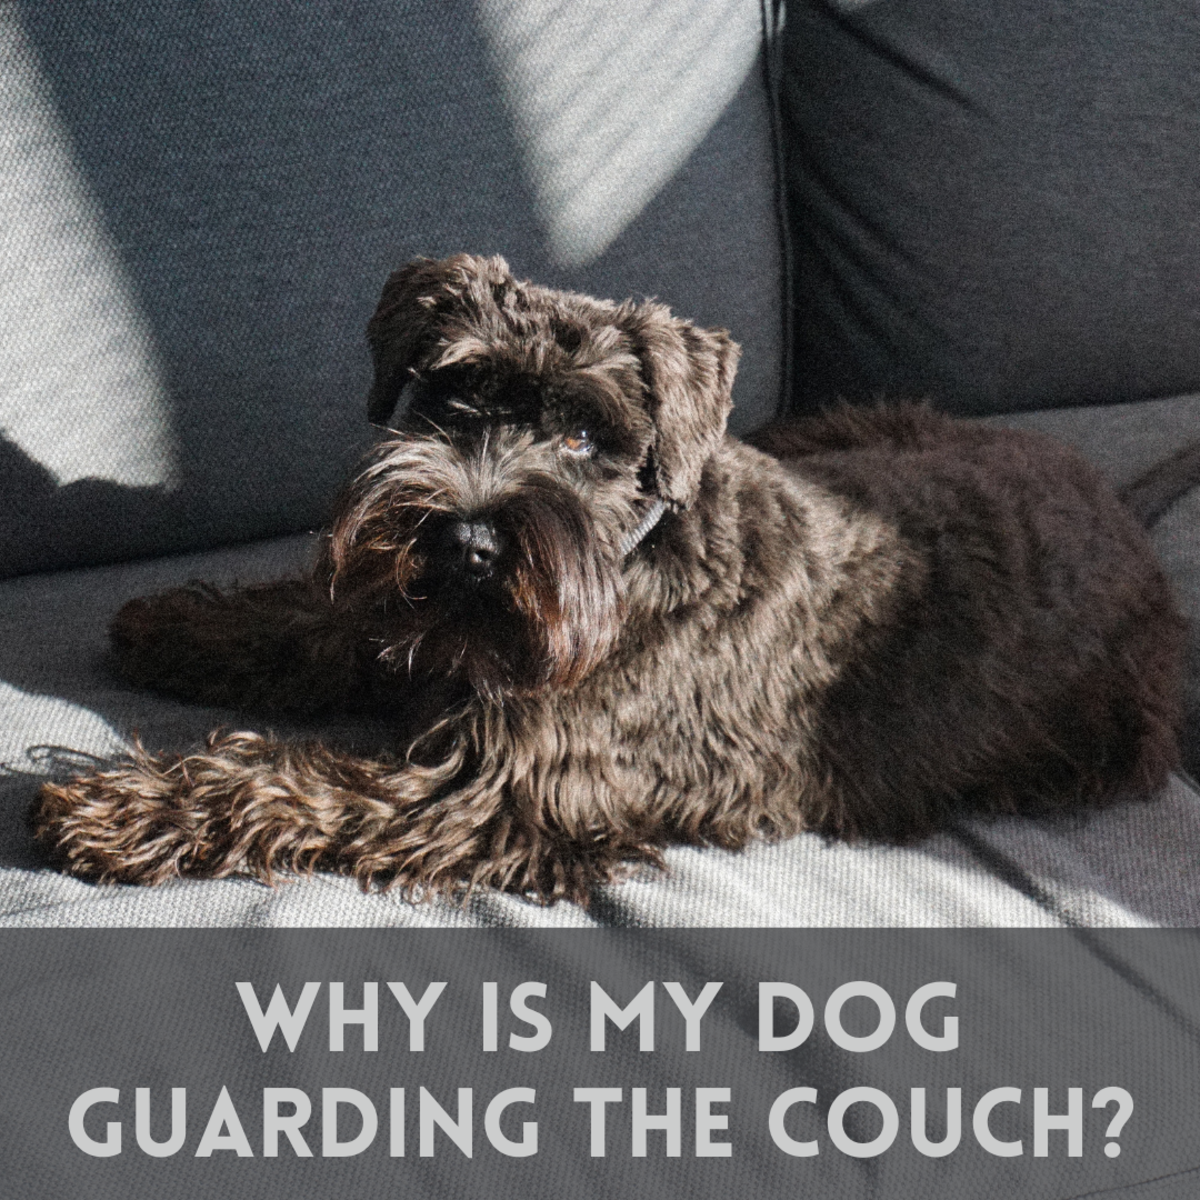 Why is your dog so protective of the couch?